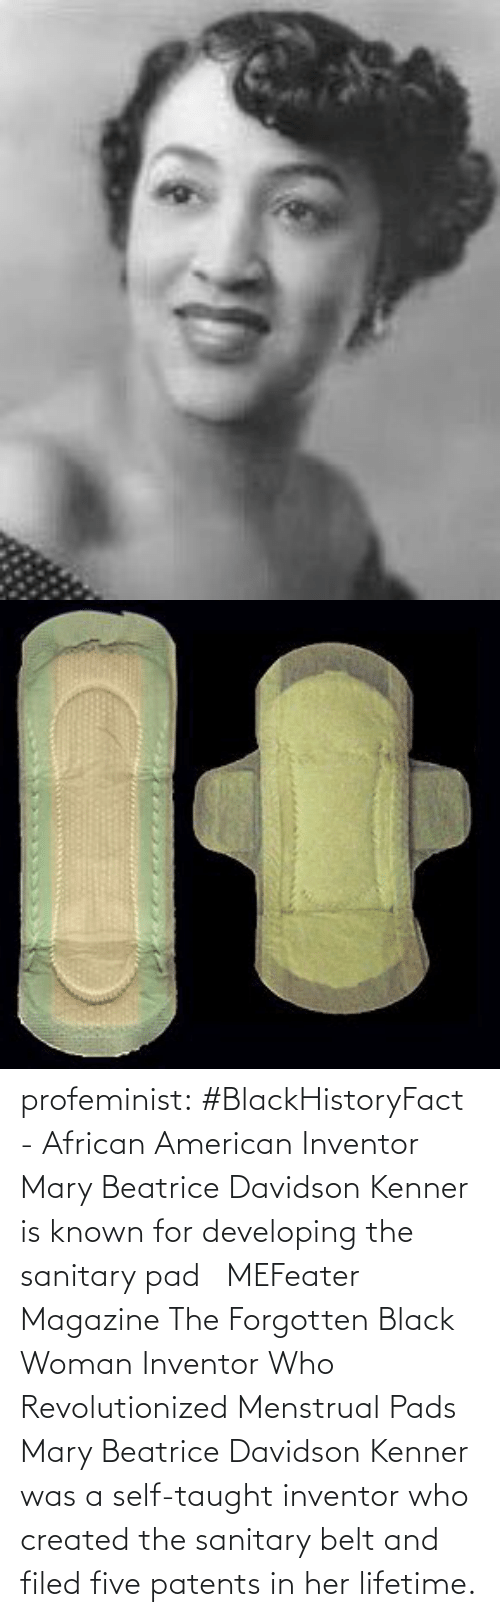 American: profeminist:   #BlackHistoryFact - African American Inventor Mary Beatrice Davidson Kenner is known for developing the sanitary pad   MEFeater Magazine      The Forgotten Black Woman Inventor Who Revolutionized Menstrual Pads Mary Beatrice Davidson Kenner was a self-taught inventor who created the sanitary belt and filed five patents in her lifetime.